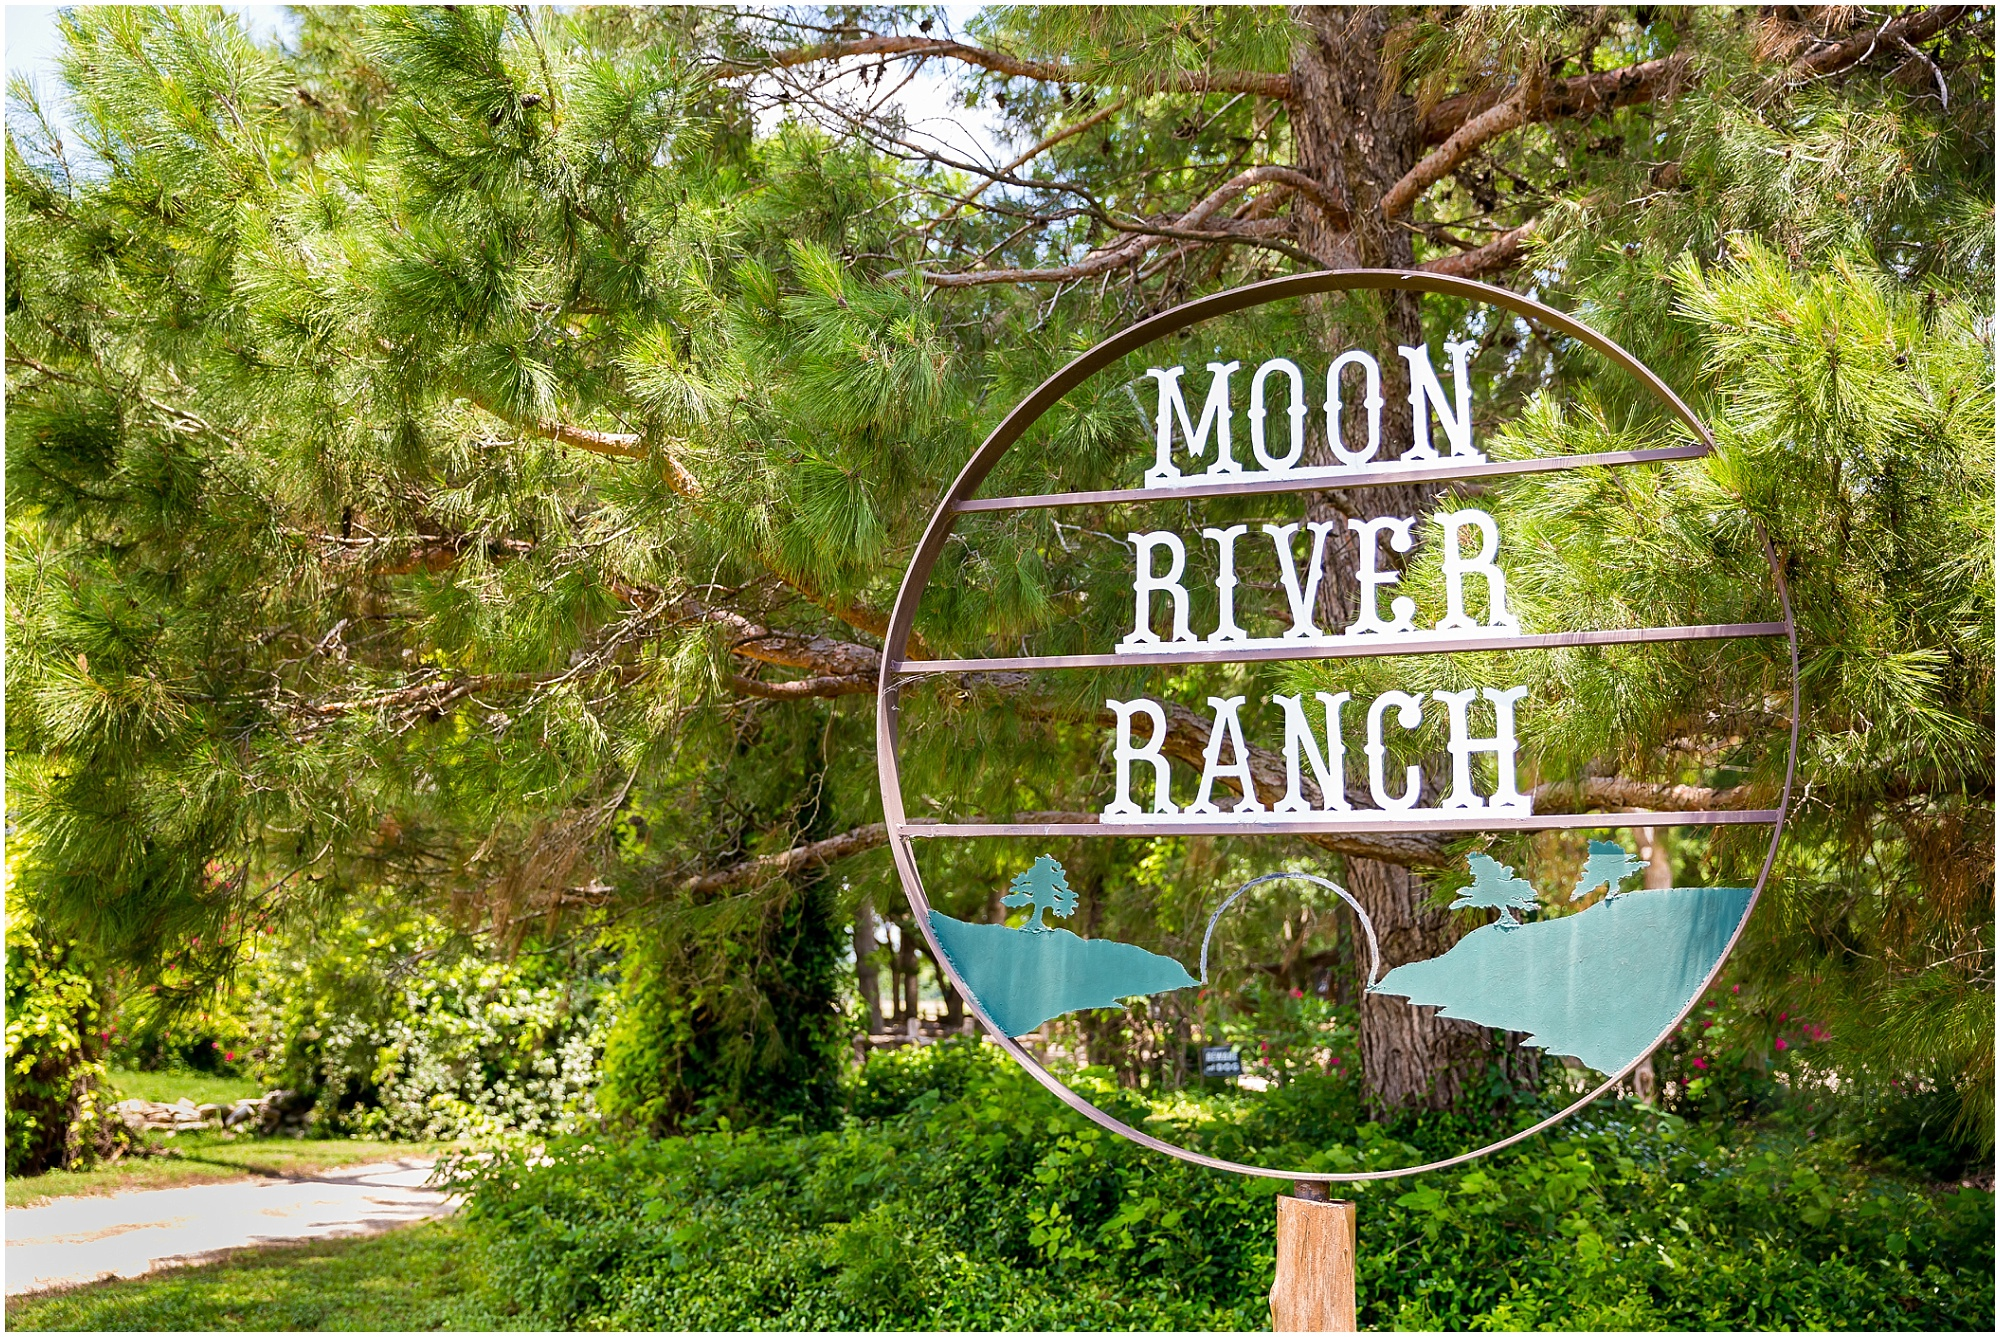 The welcome sign at Moon River Ranch | Jason & Melaina Photography | www.jasonandmelaina.com